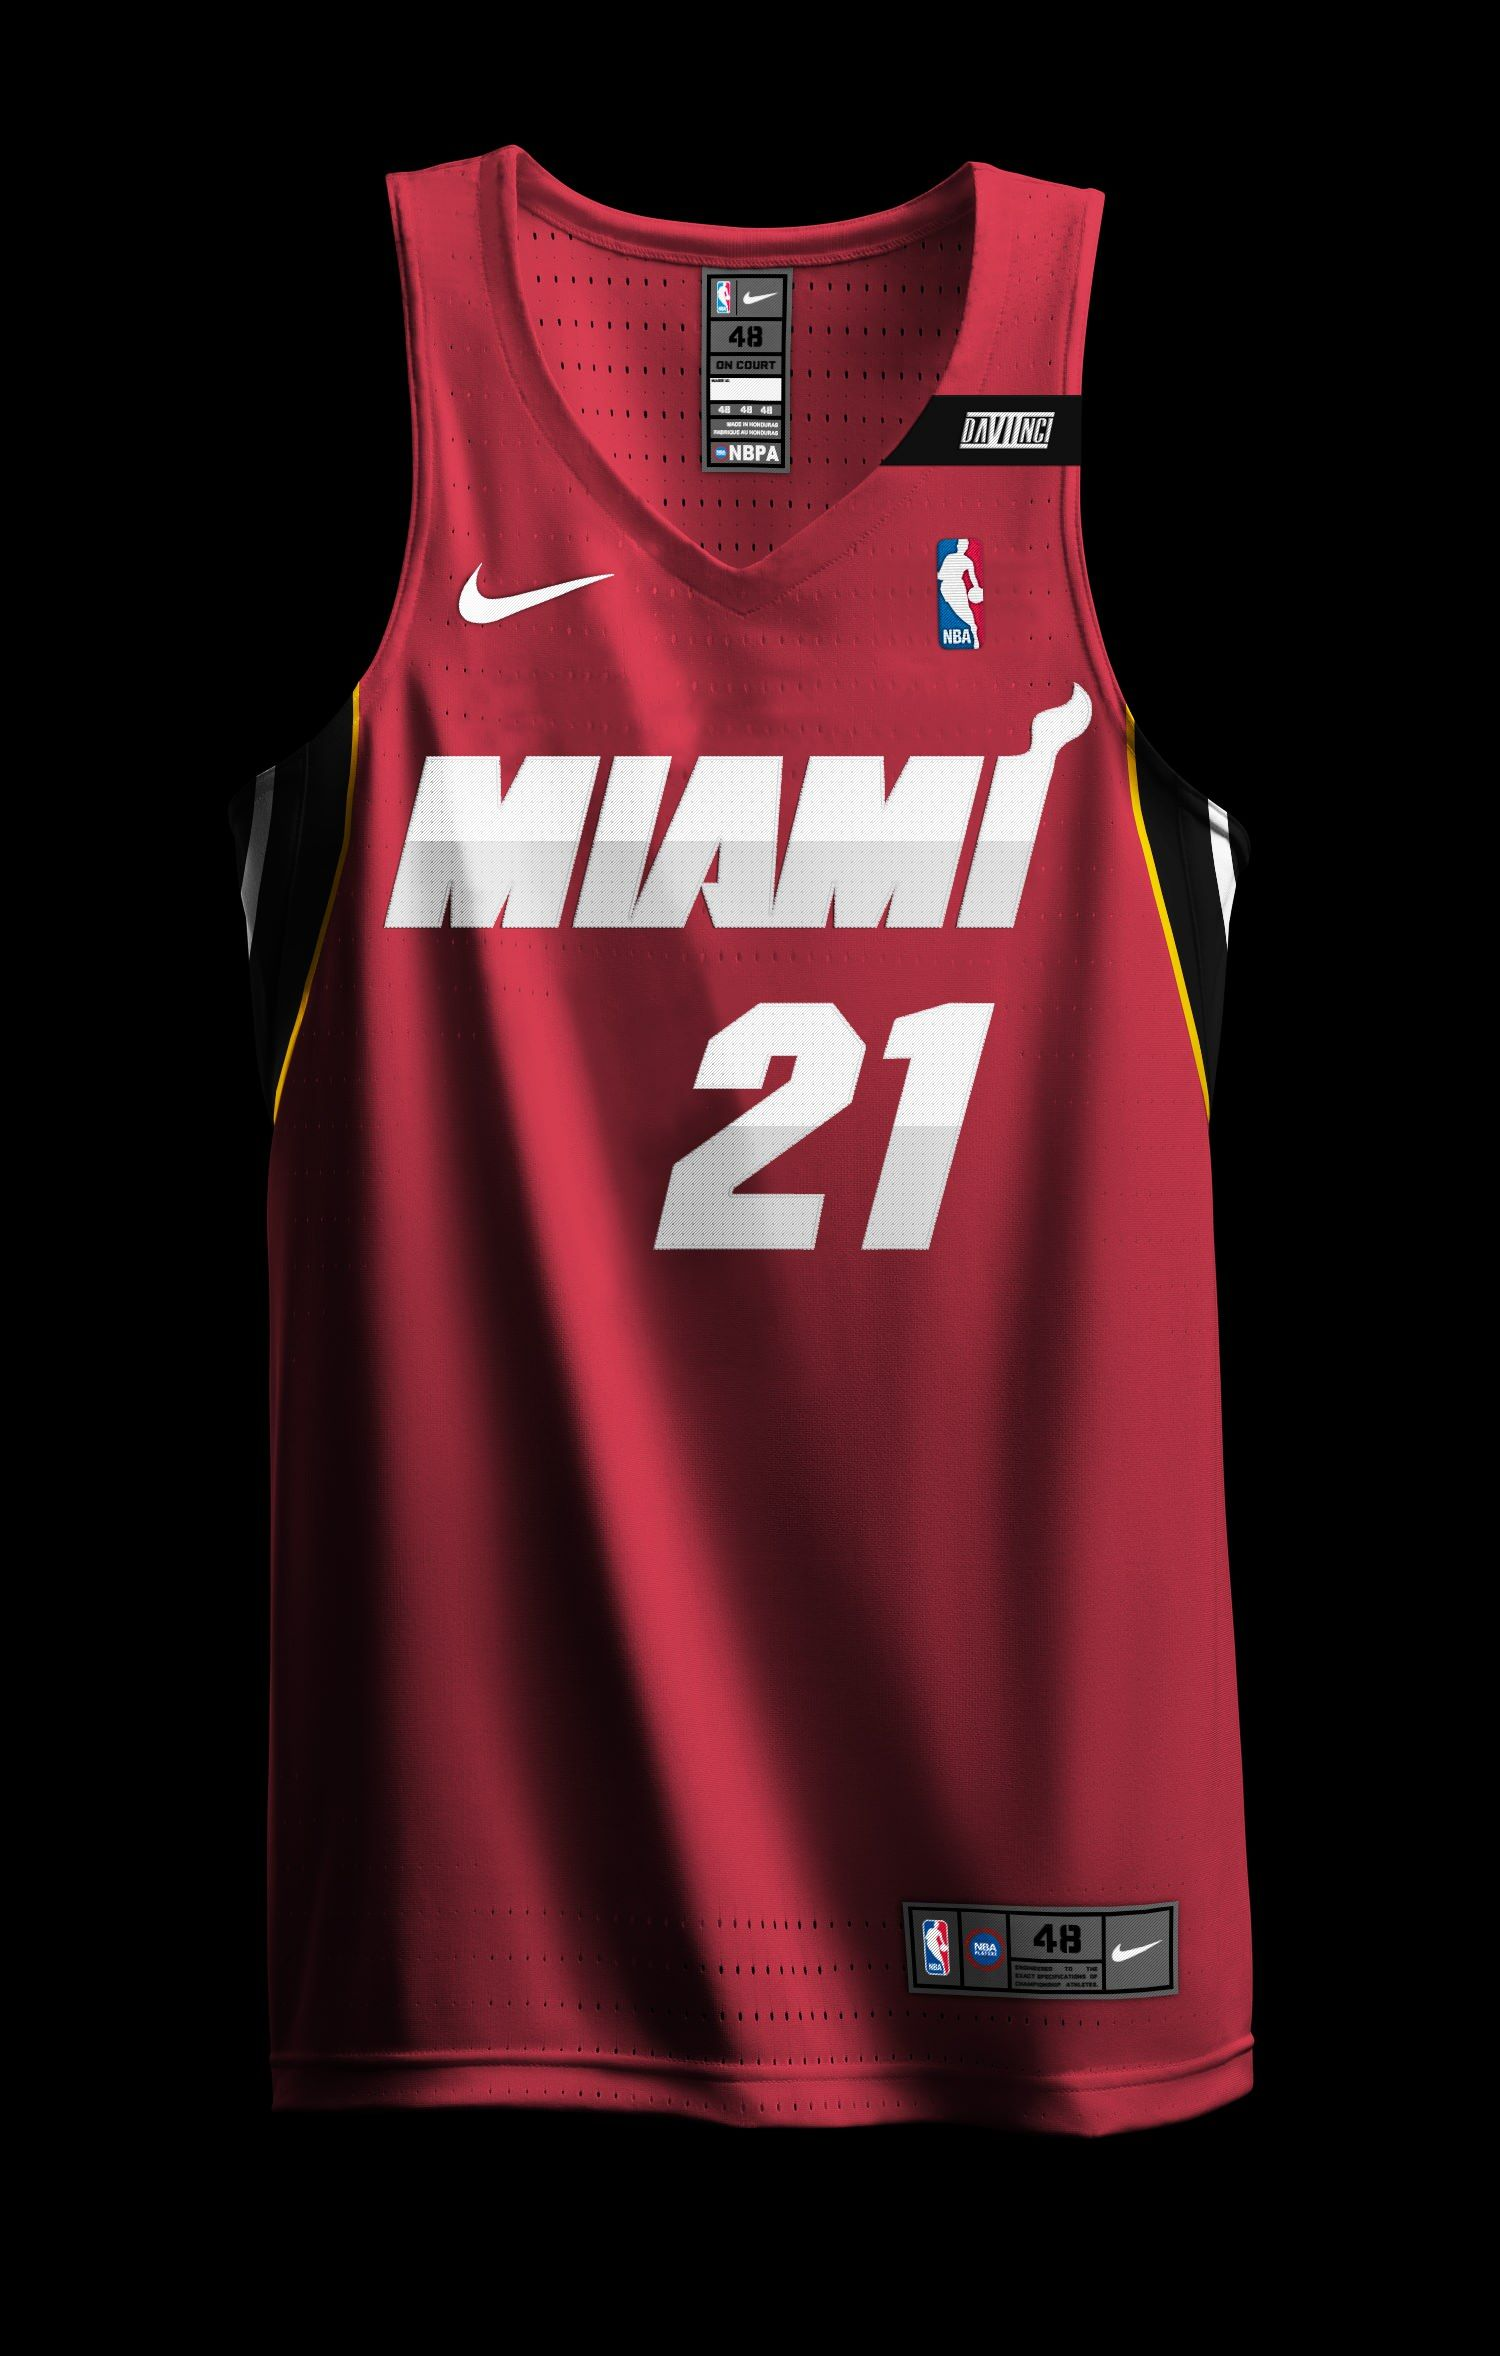 Nba X Nike Redesign Project Miami Heat City Edition Added 1 2 Page 6 Concepts Chris C Sports Uniform Design Basketball Jersey Outfit Basketball Clothes